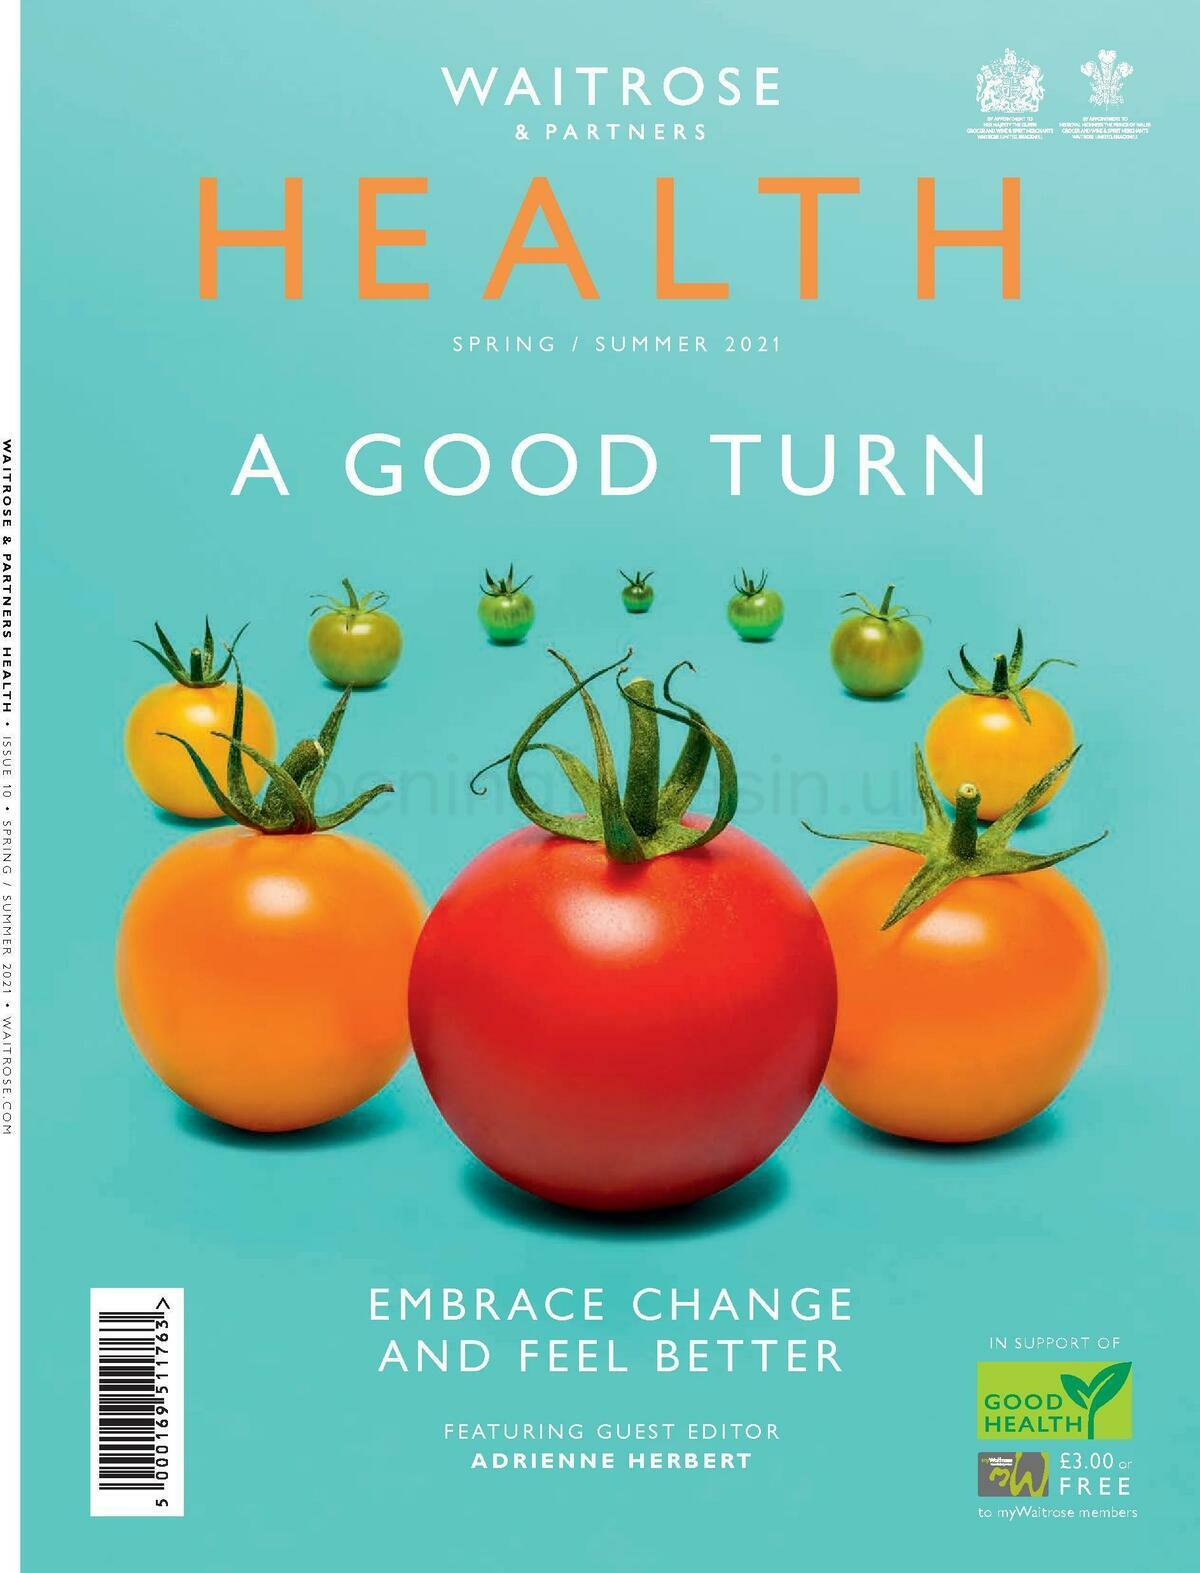 Waitrose Health Spring / Summer Offers from April 20